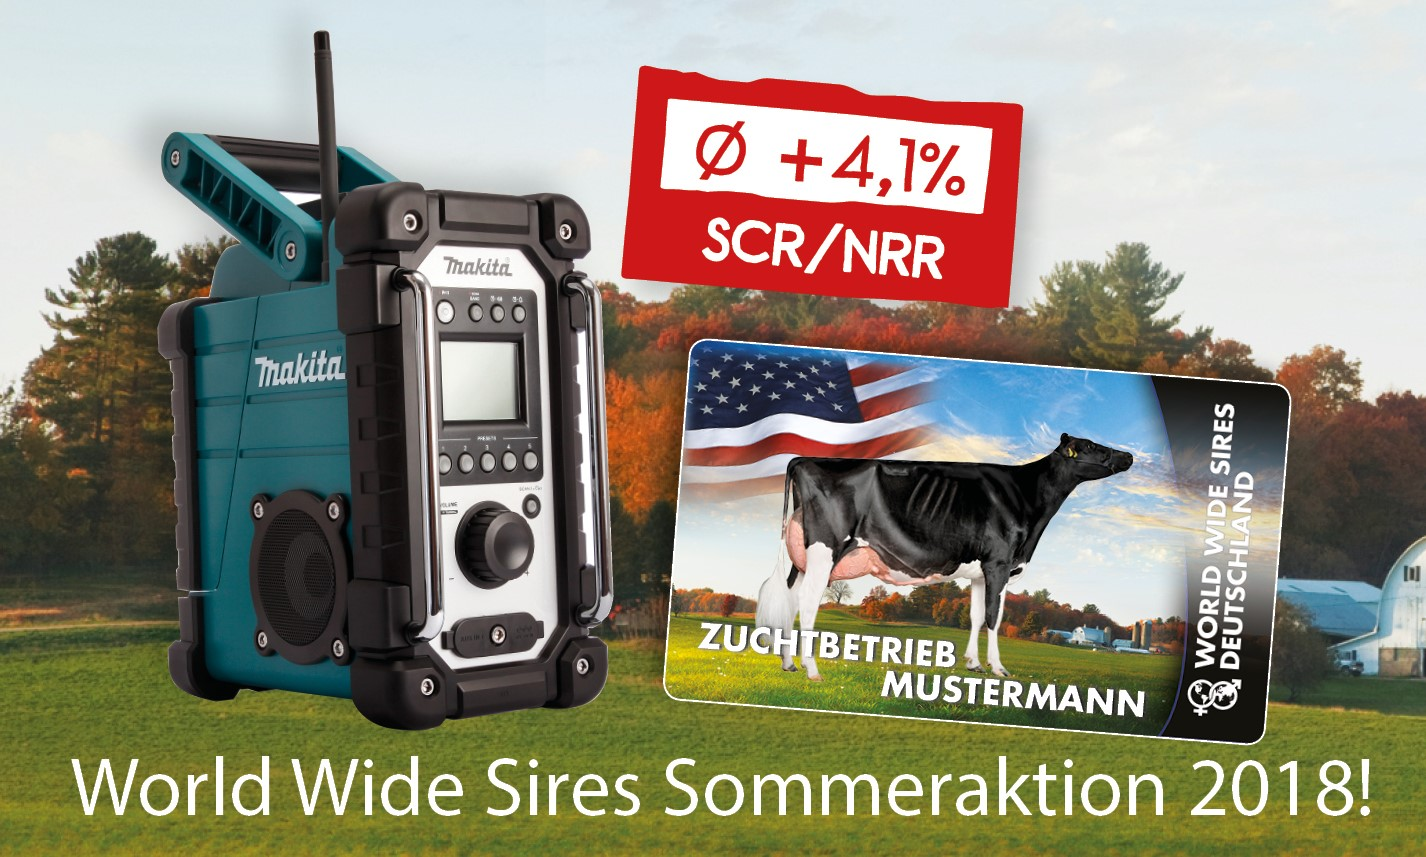 World Wide Sires Sommeraktion 2018